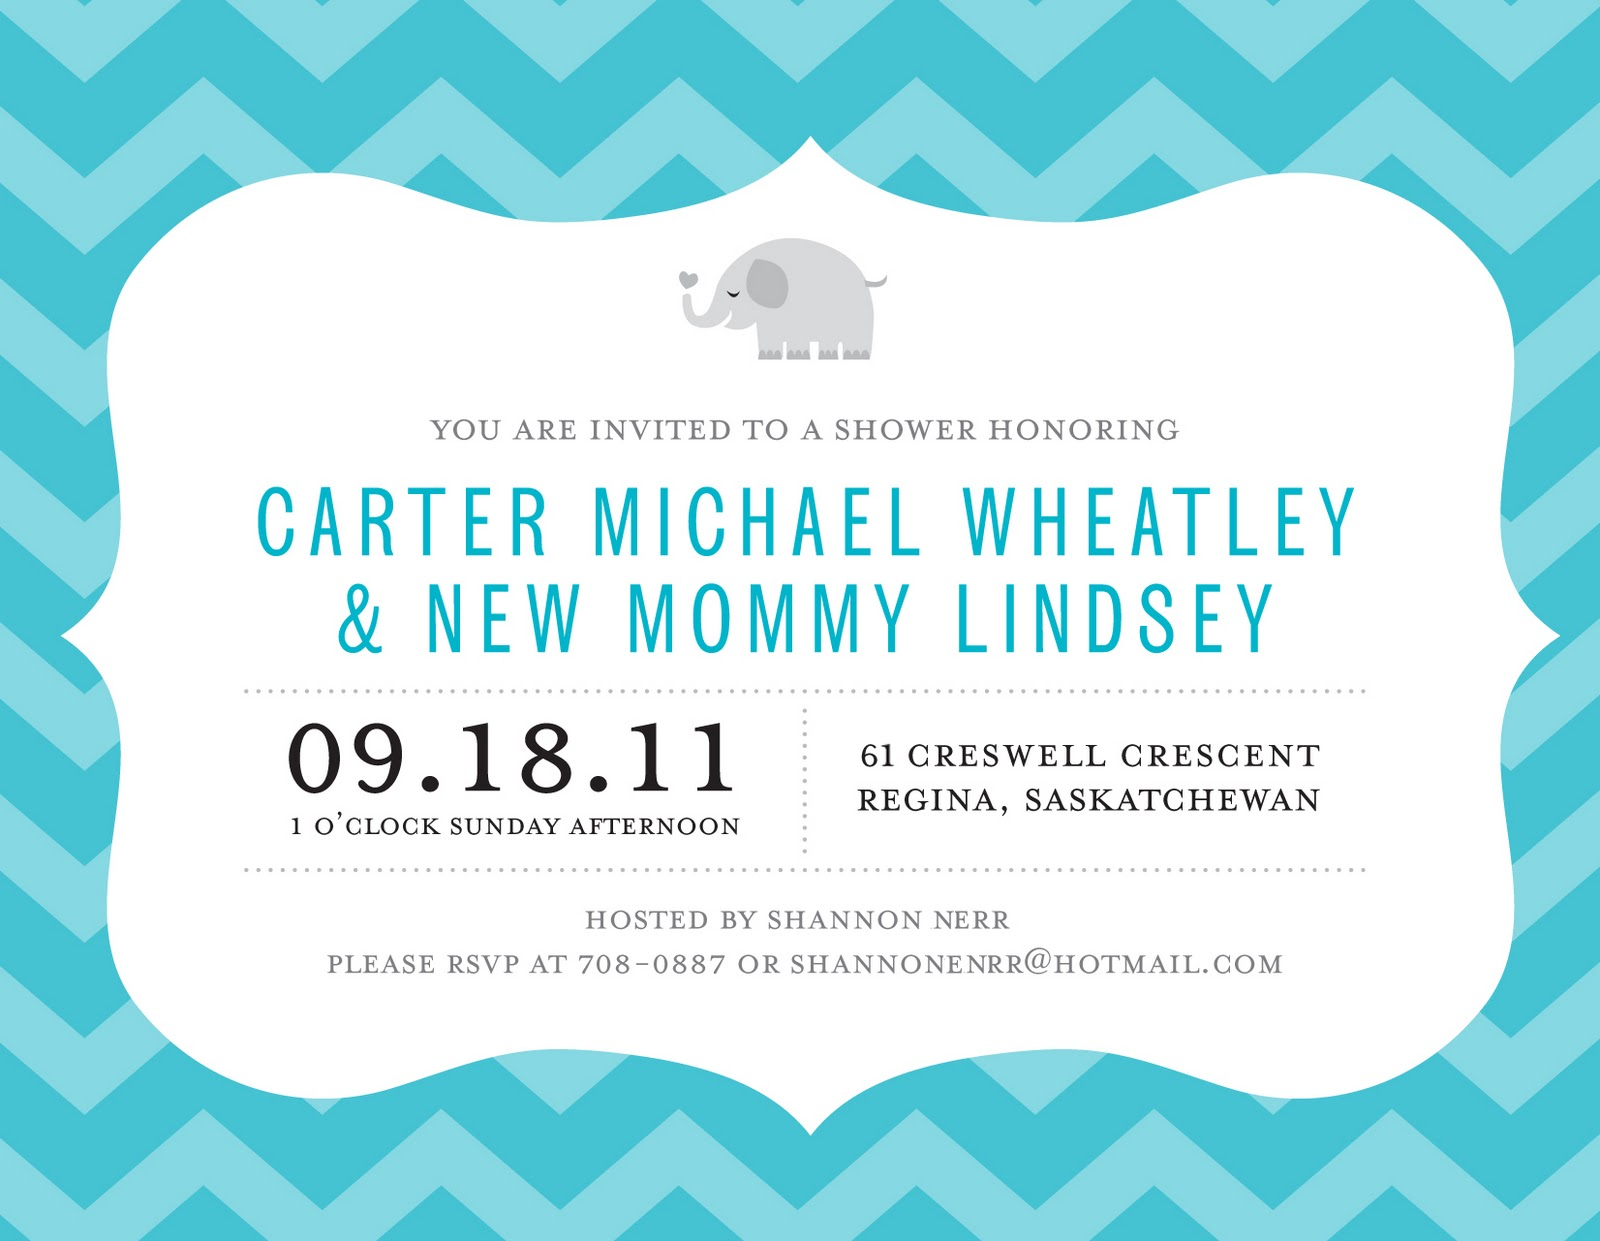 Funny Baby Shower Invitations 29 Desktop Background. Funny Baby Shower  Invitations 29 Desktop Background